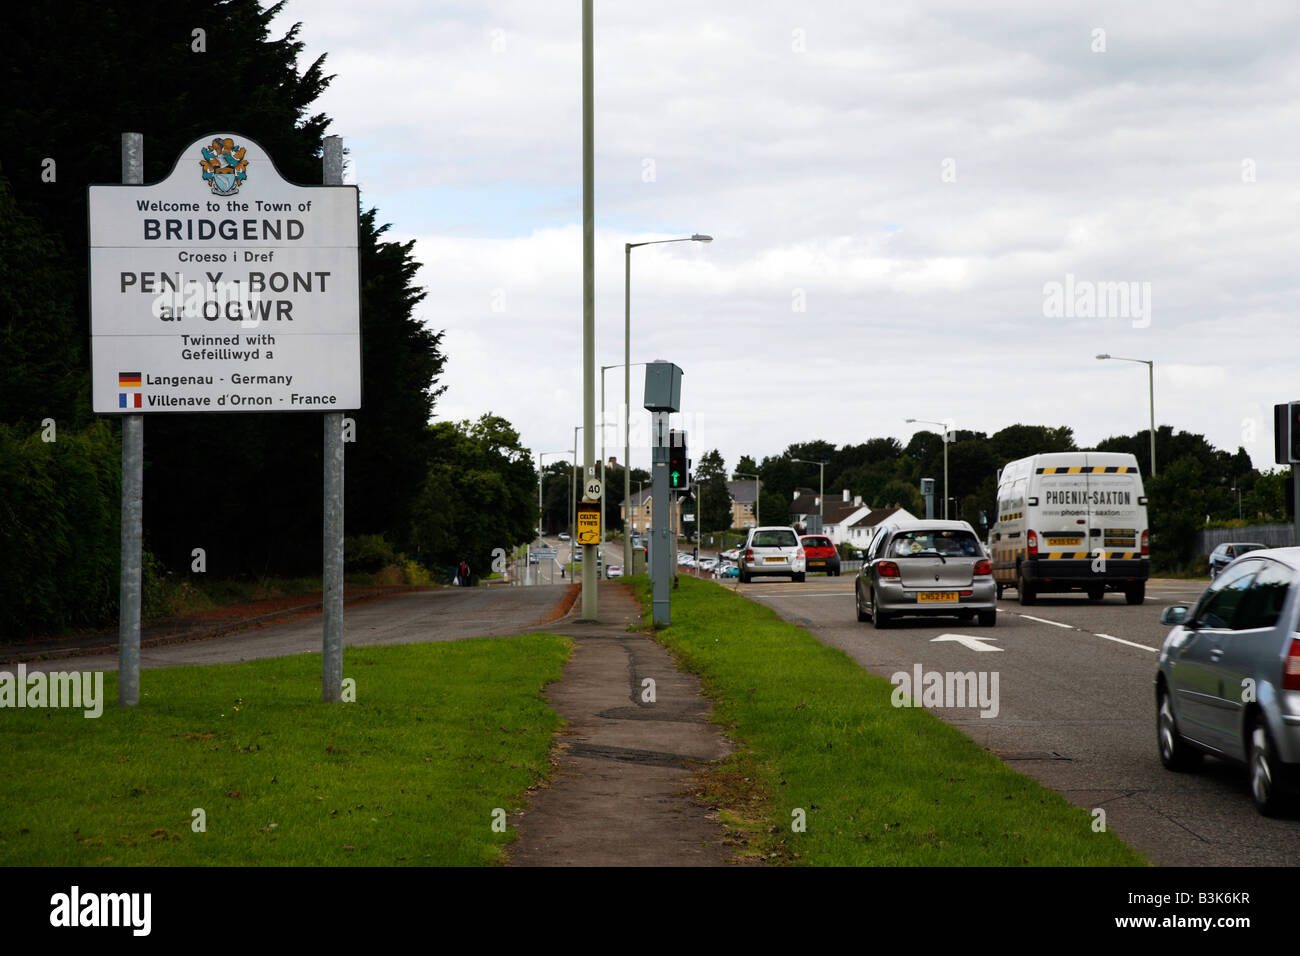 Gorgeous Bridgend Wales Stock Photos  Bridgend Wales Stock Images  Alamy With Foxy Bridgend Road Sign Wales  Stock Image With Breathtaking Garden Shed Northern Ireland Also Wilko Garden Lights In Addition Gardens In The Cotswolds And Specsavers Covent Garden As Well As Garden Cart Trolley Additionally Imperial Garden London From Alamycom With   Foxy Bridgend Wales Stock Photos  Bridgend Wales Stock Images  Alamy With Breathtaking Bridgend Road Sign Wales  Stock Image And Gorgeous Garden Shed Northern Ireland Also Wilko Garden Lights In Addition Gardens In The Cotswolds From Alamycom